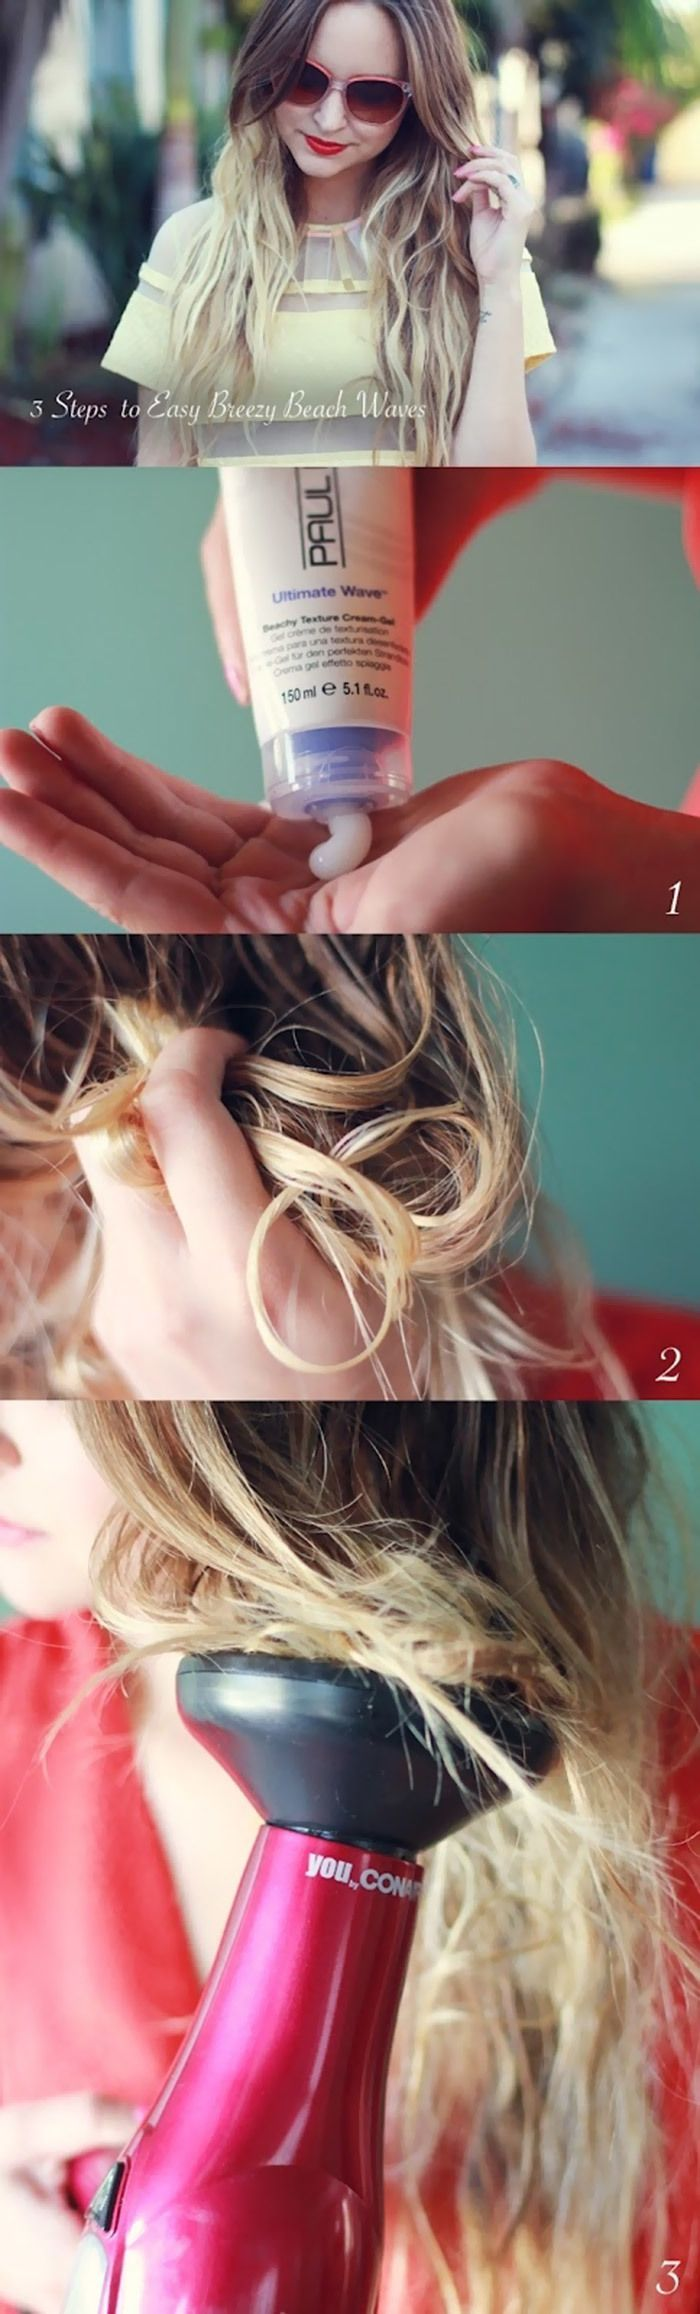 Now give your hair a new style each day with these amazing hair hacks. Here are 25 hairstyling hacks every girl should know, try these time-saving stylish tips